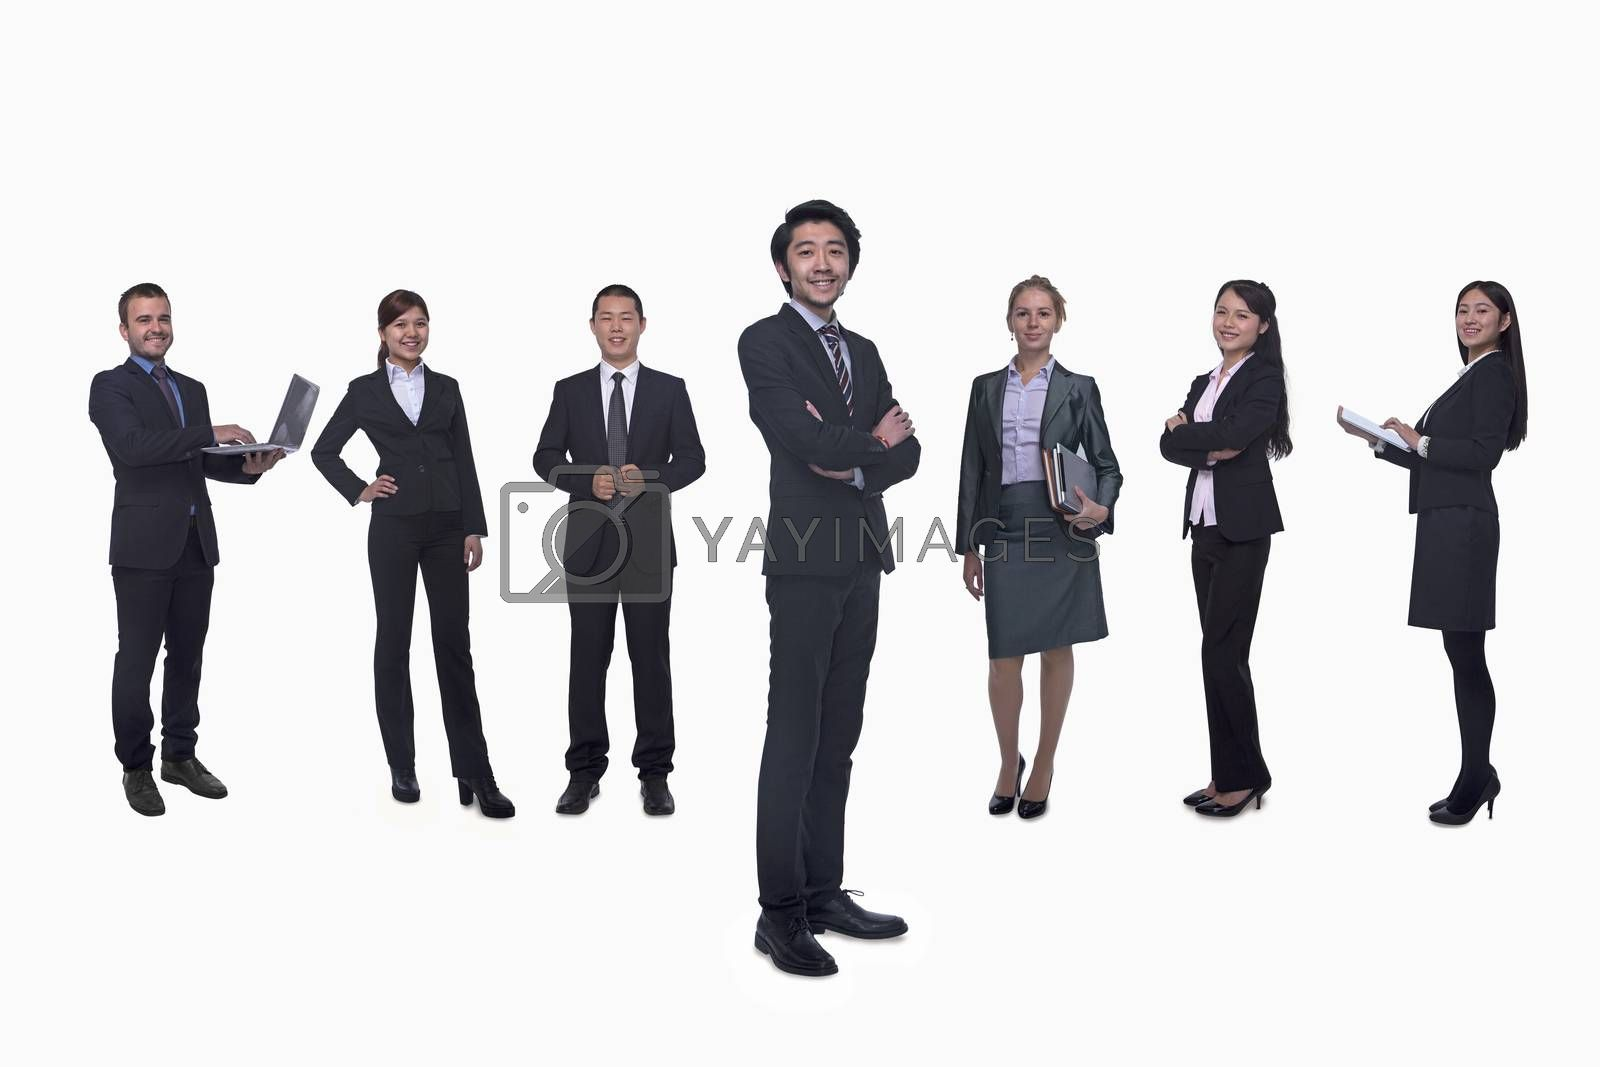 Medium group of business people in a row, portrait, full length, studio shot by XiXinXing